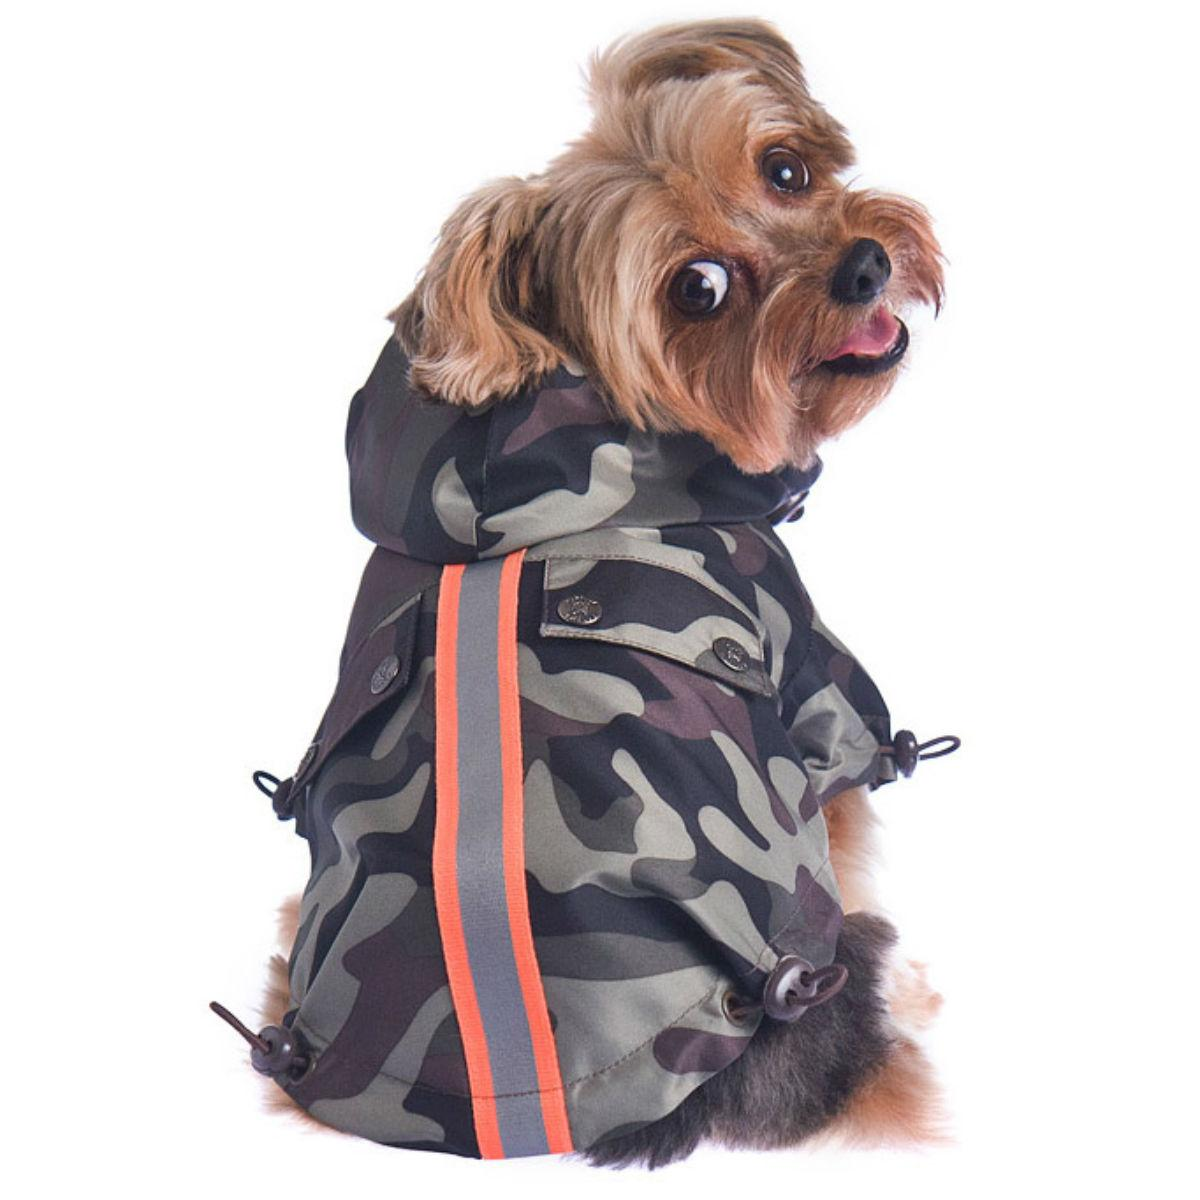 Convoy Reversible Dog Coat - Camo